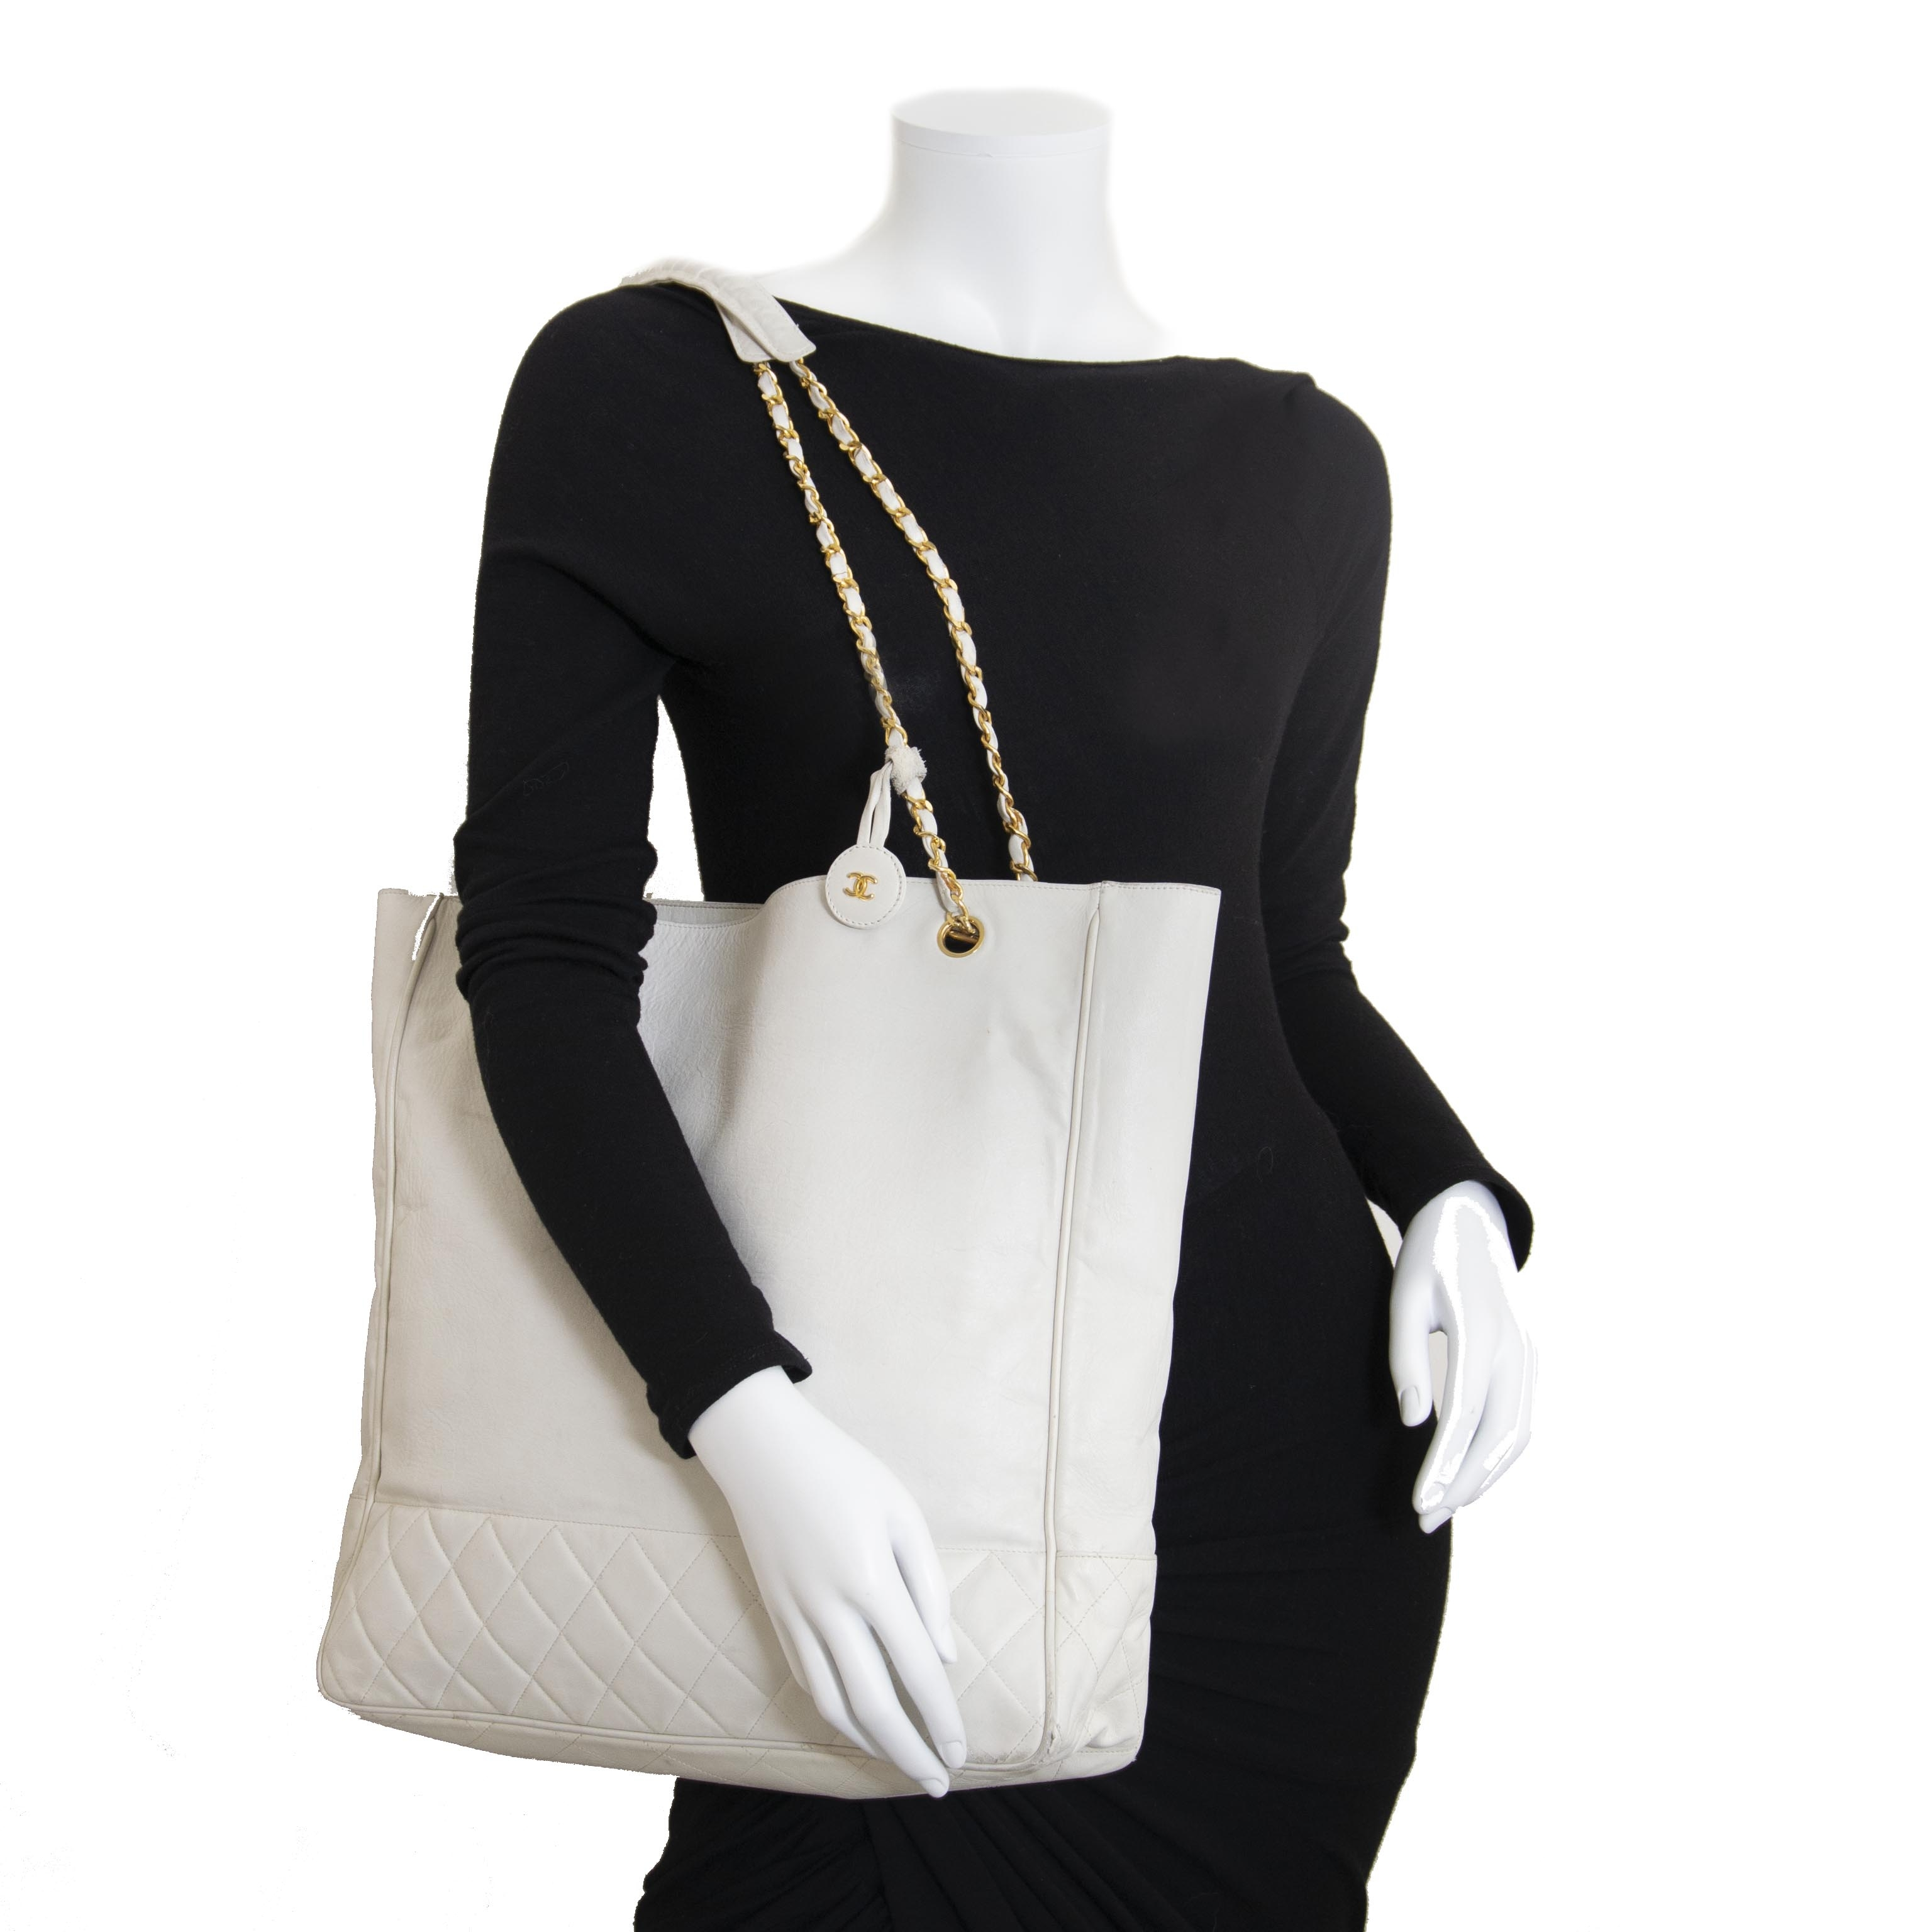 Chanel White Vintage Leather Tote Bag now for sale at labellov vintage fashion webshop belgium